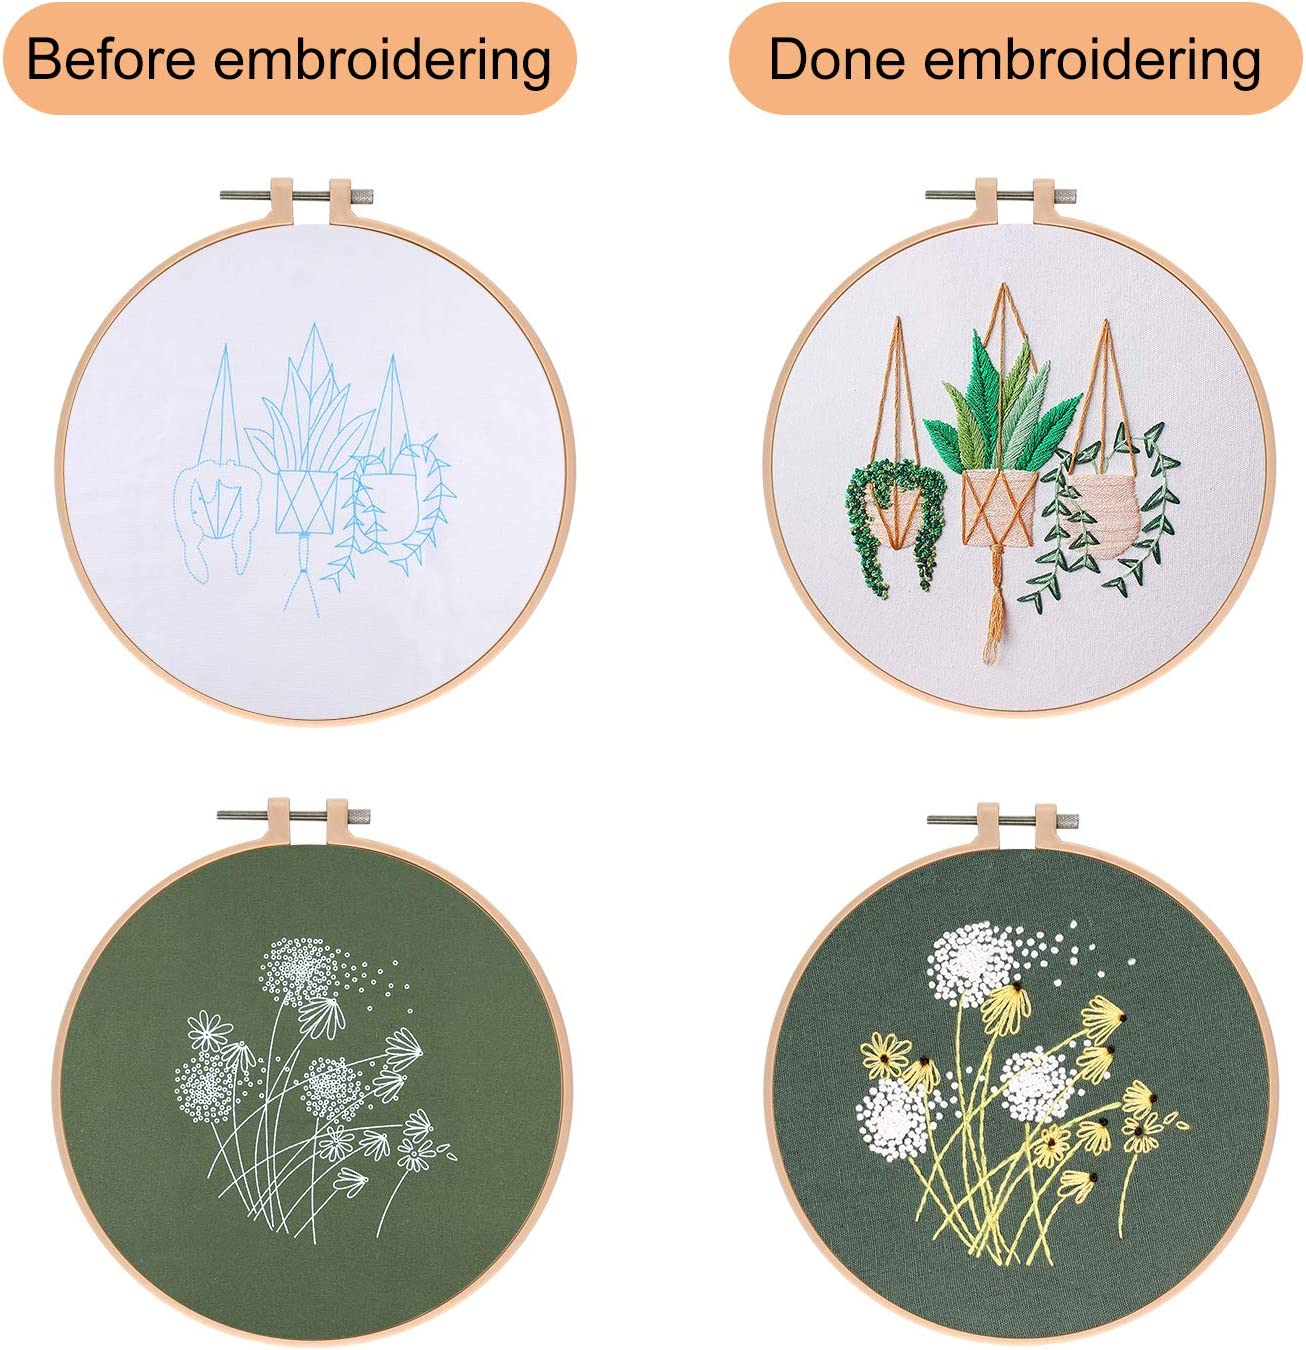 Color Threads Needle Kit 2 Pcs Plastic Embroidery Hoops KUUQA 7 Pcs Embroidery Starter Kit with Pattern and Instructions Cross Stitch Kit Including 4Pcs Embroidery Clothes with Floral Pattern